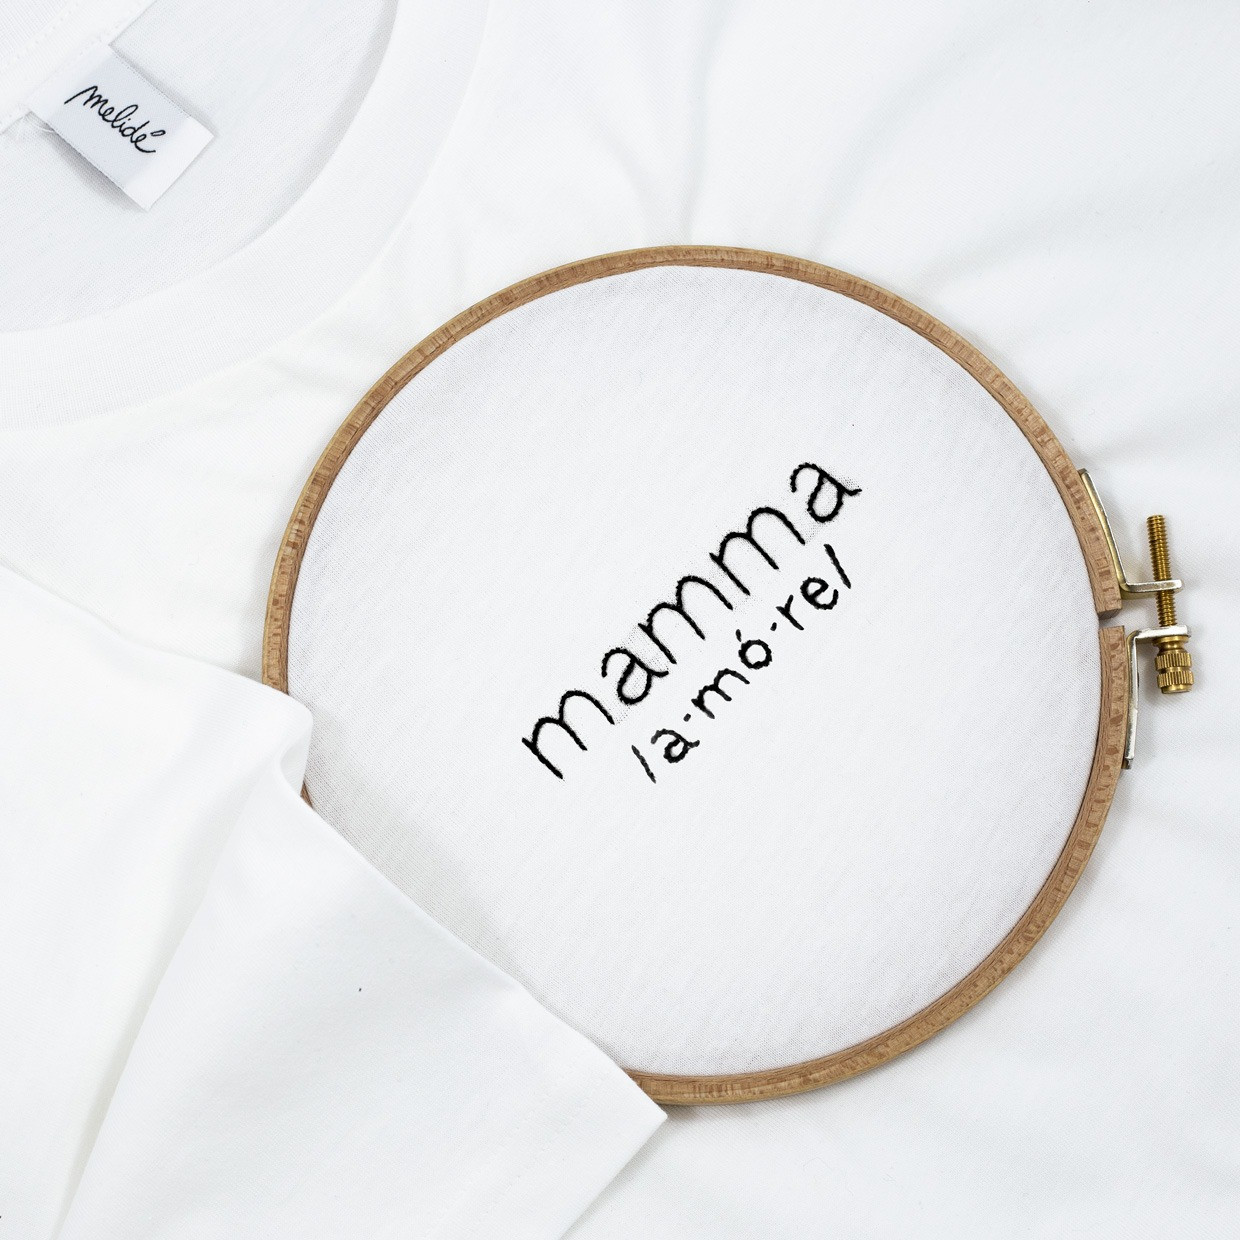 The MAMMA AMORE tee